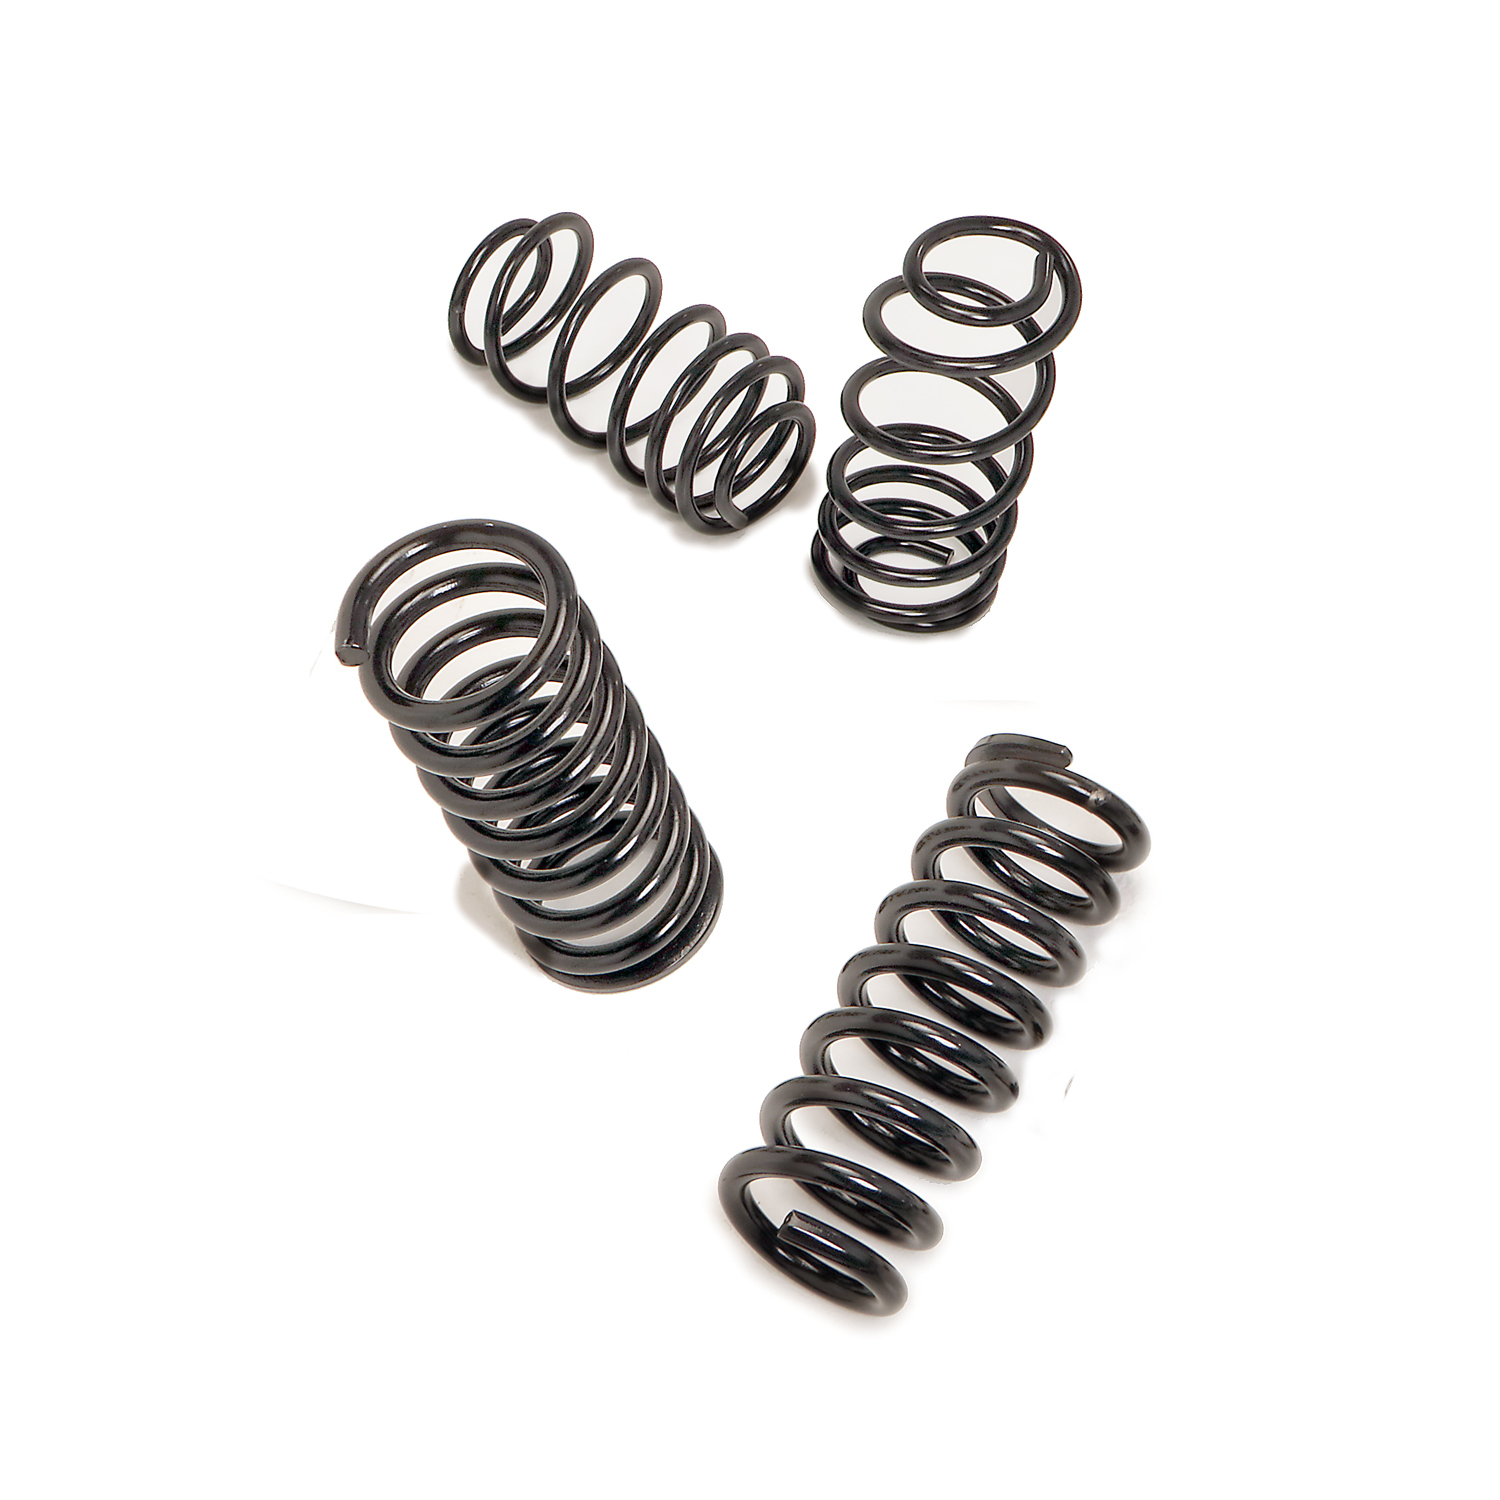 1965 – 1966 Ford Galaxie Front and Rear Coil Springs By Hotchkis